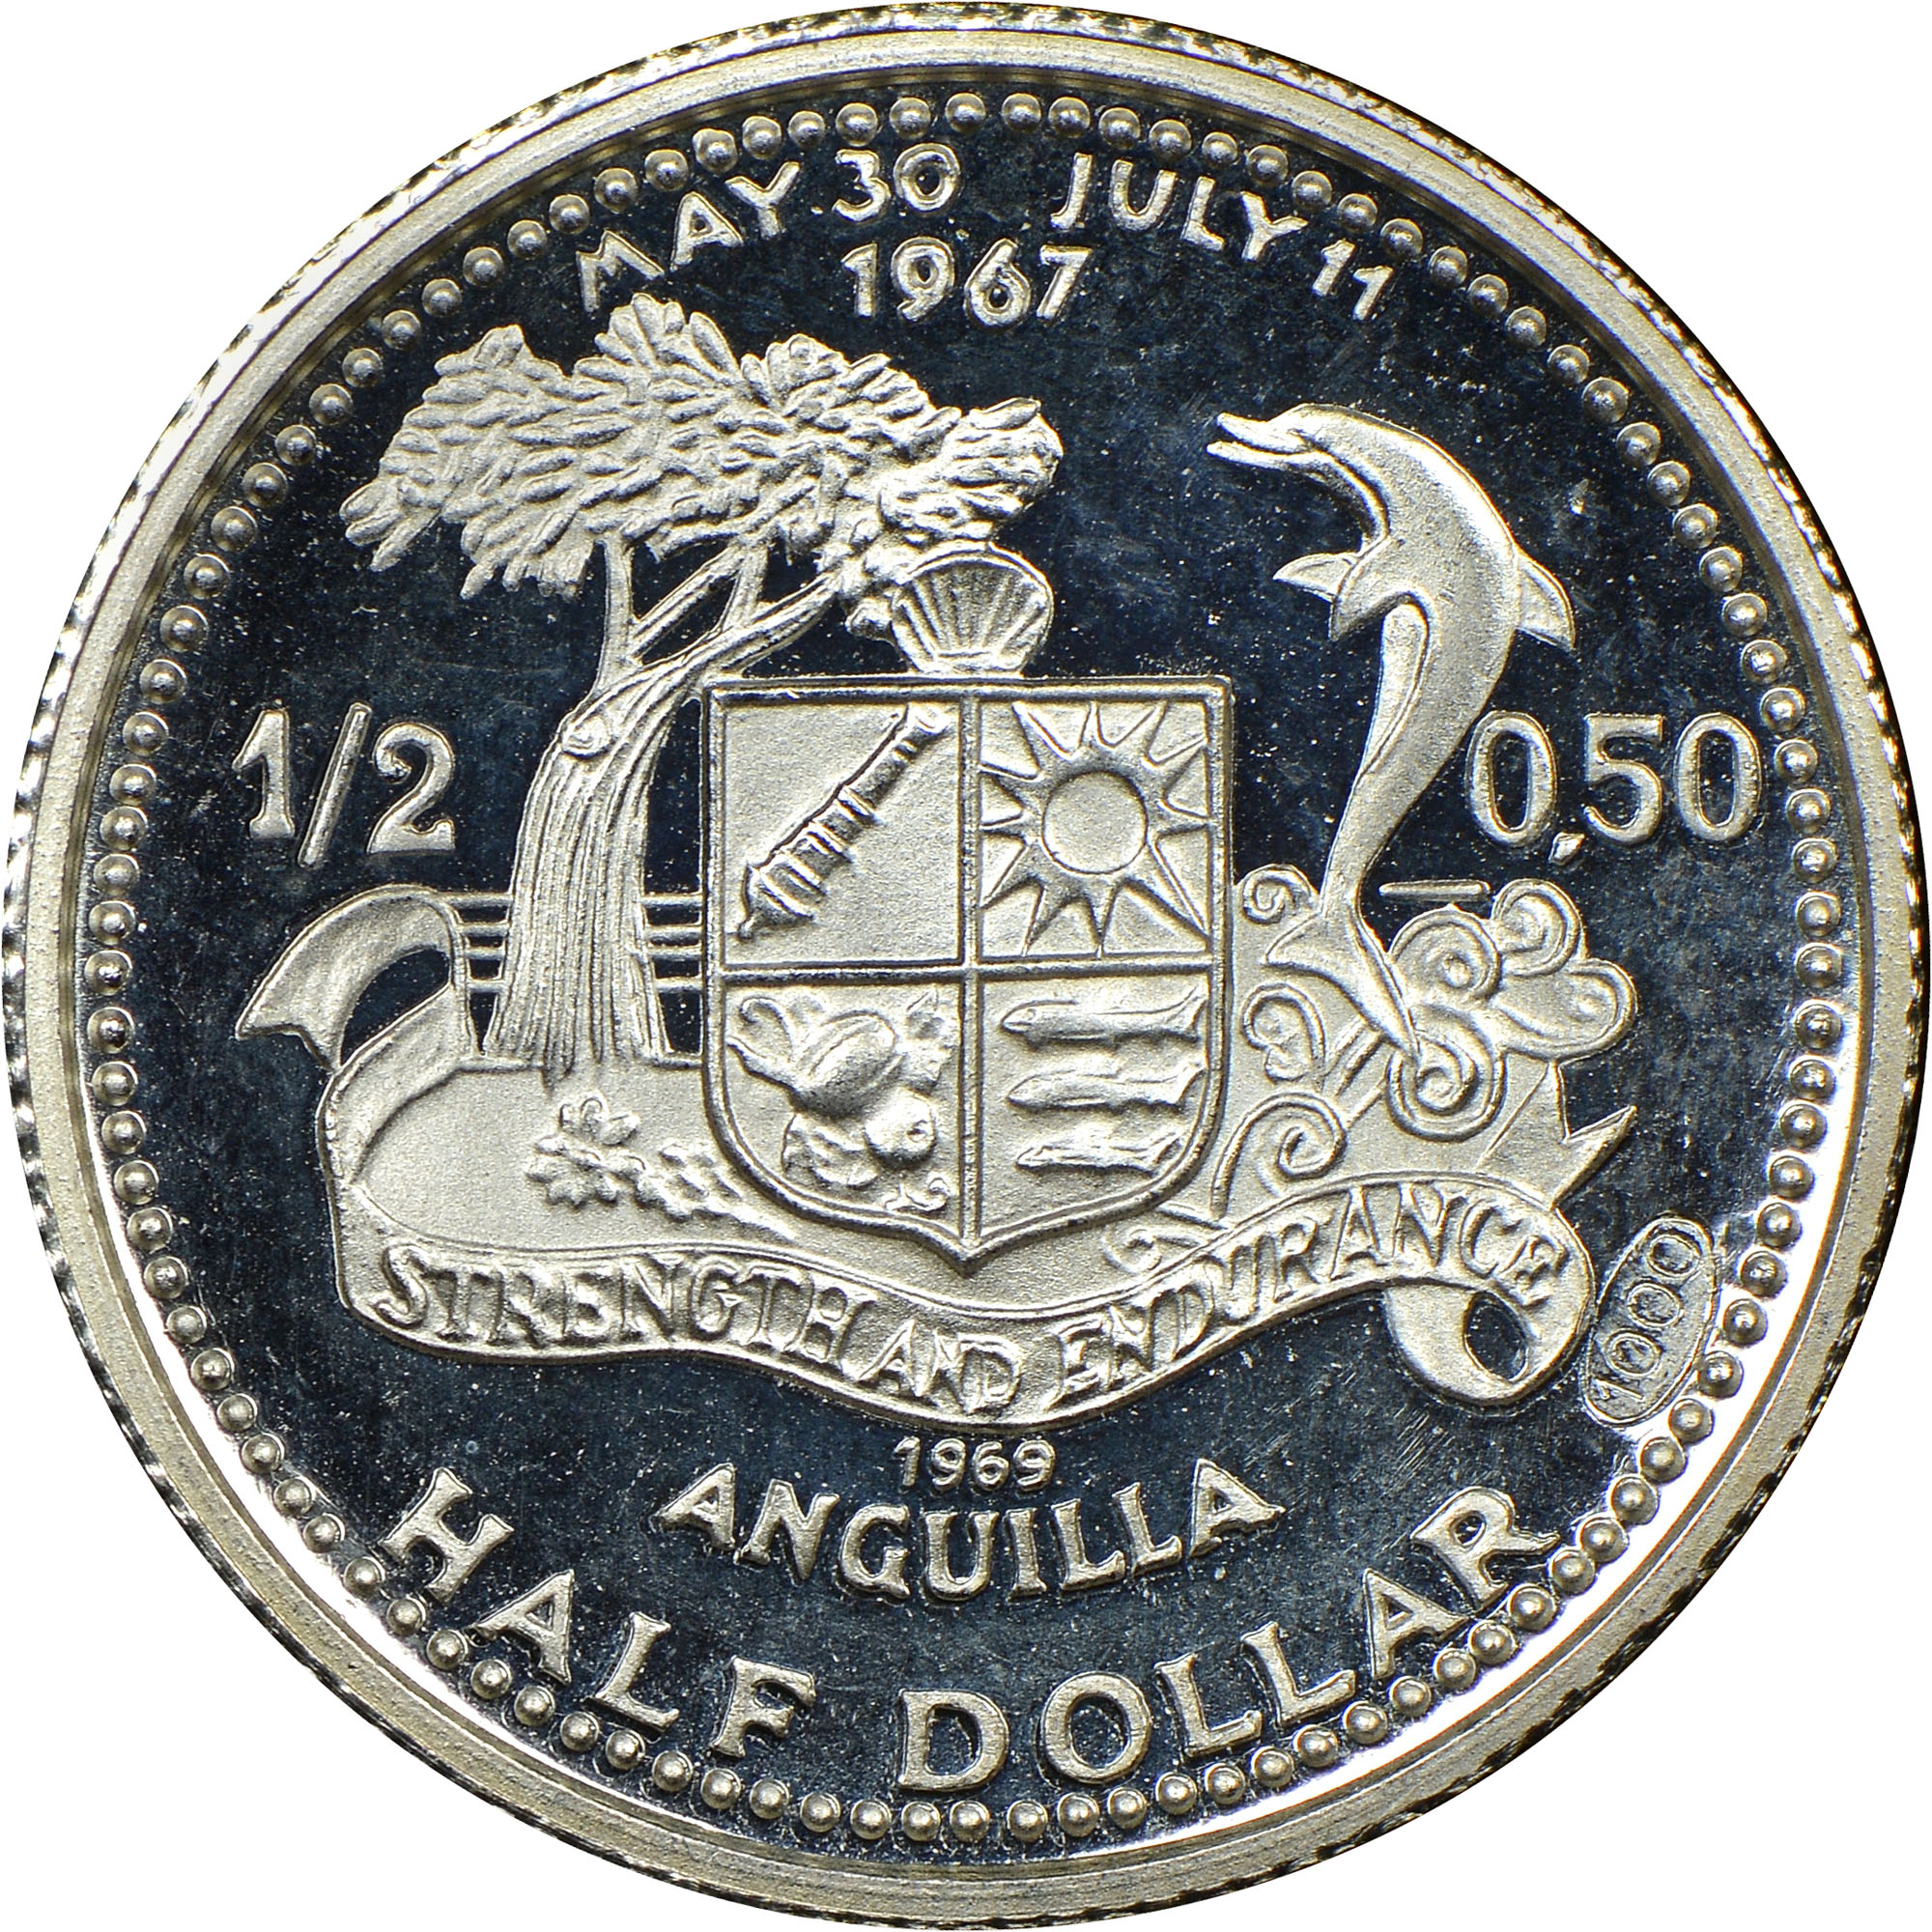 1969-ND Anguilla 1/2 Dollar reverse